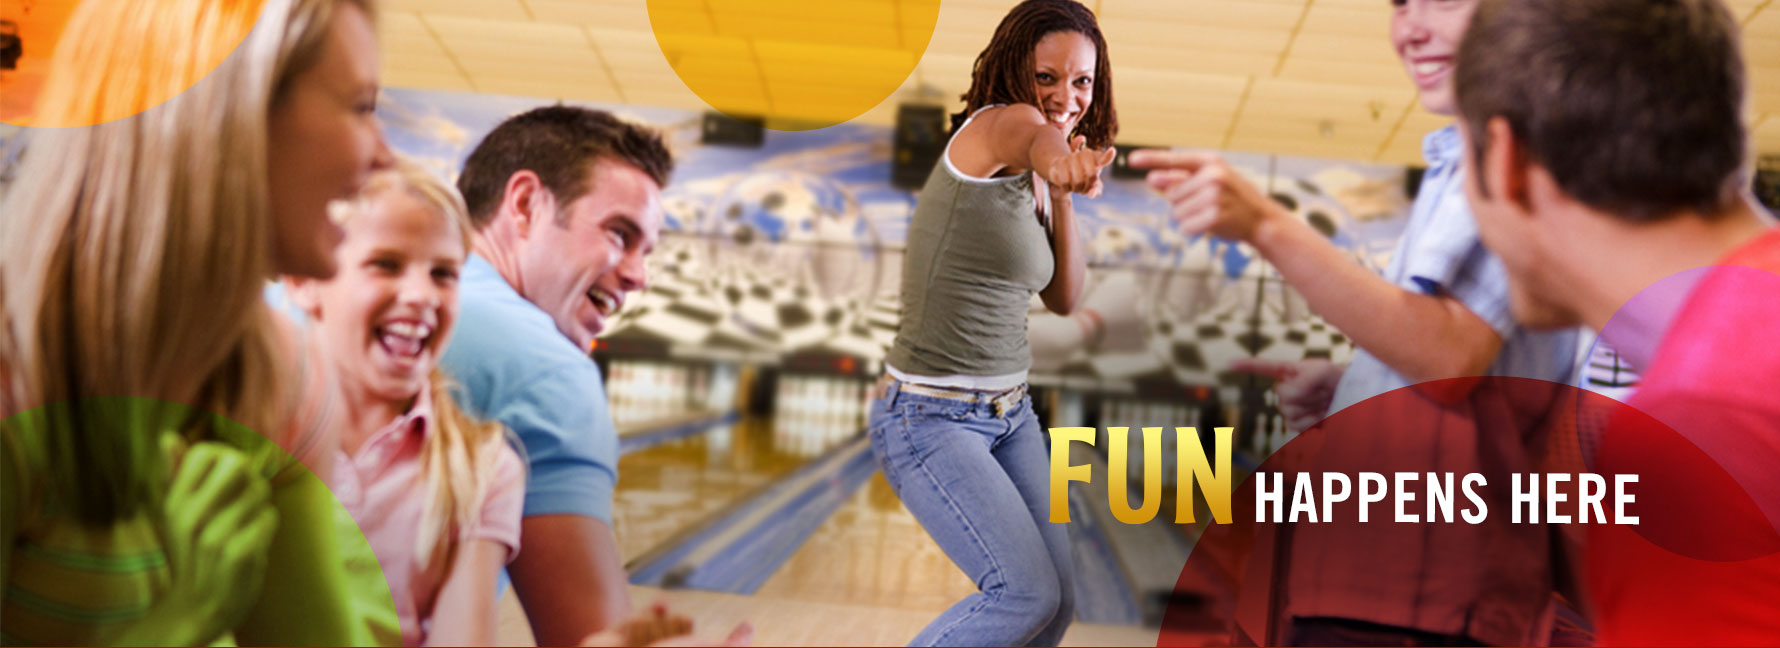 Bowling Fun Happens At Our Center